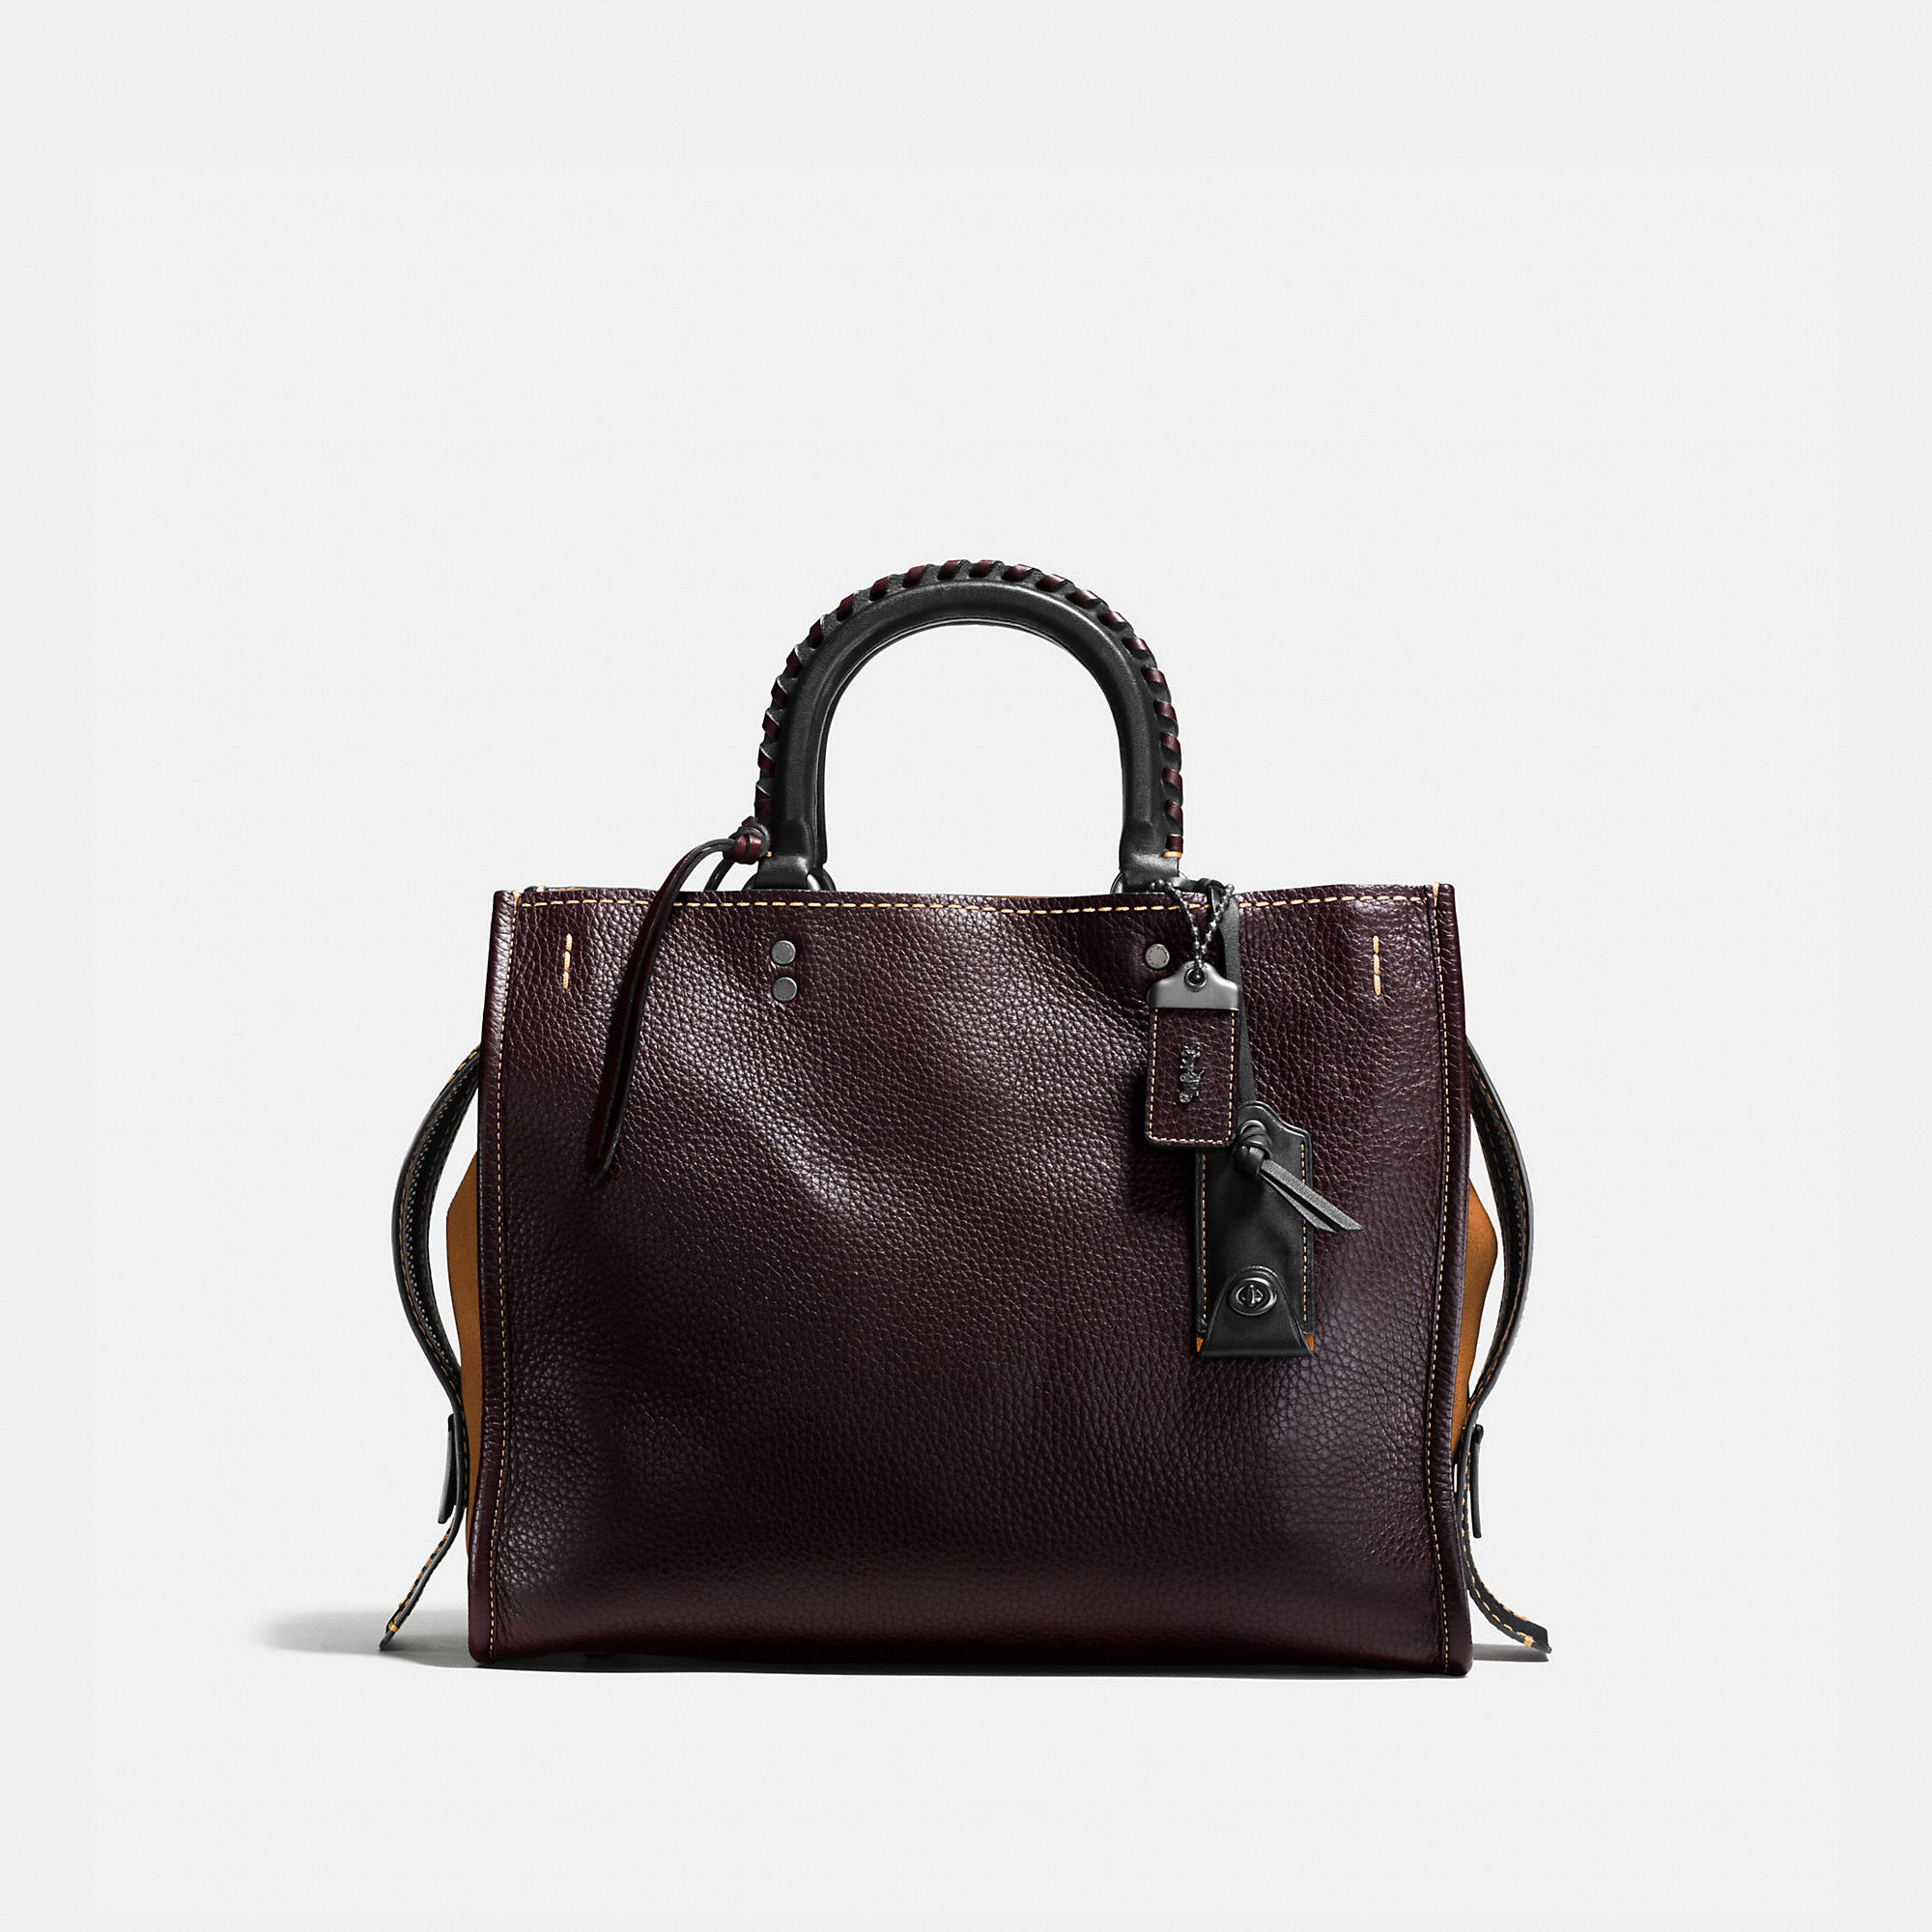 Coach Rogue In Glovetanned Pebble Leather With Embellished Handle